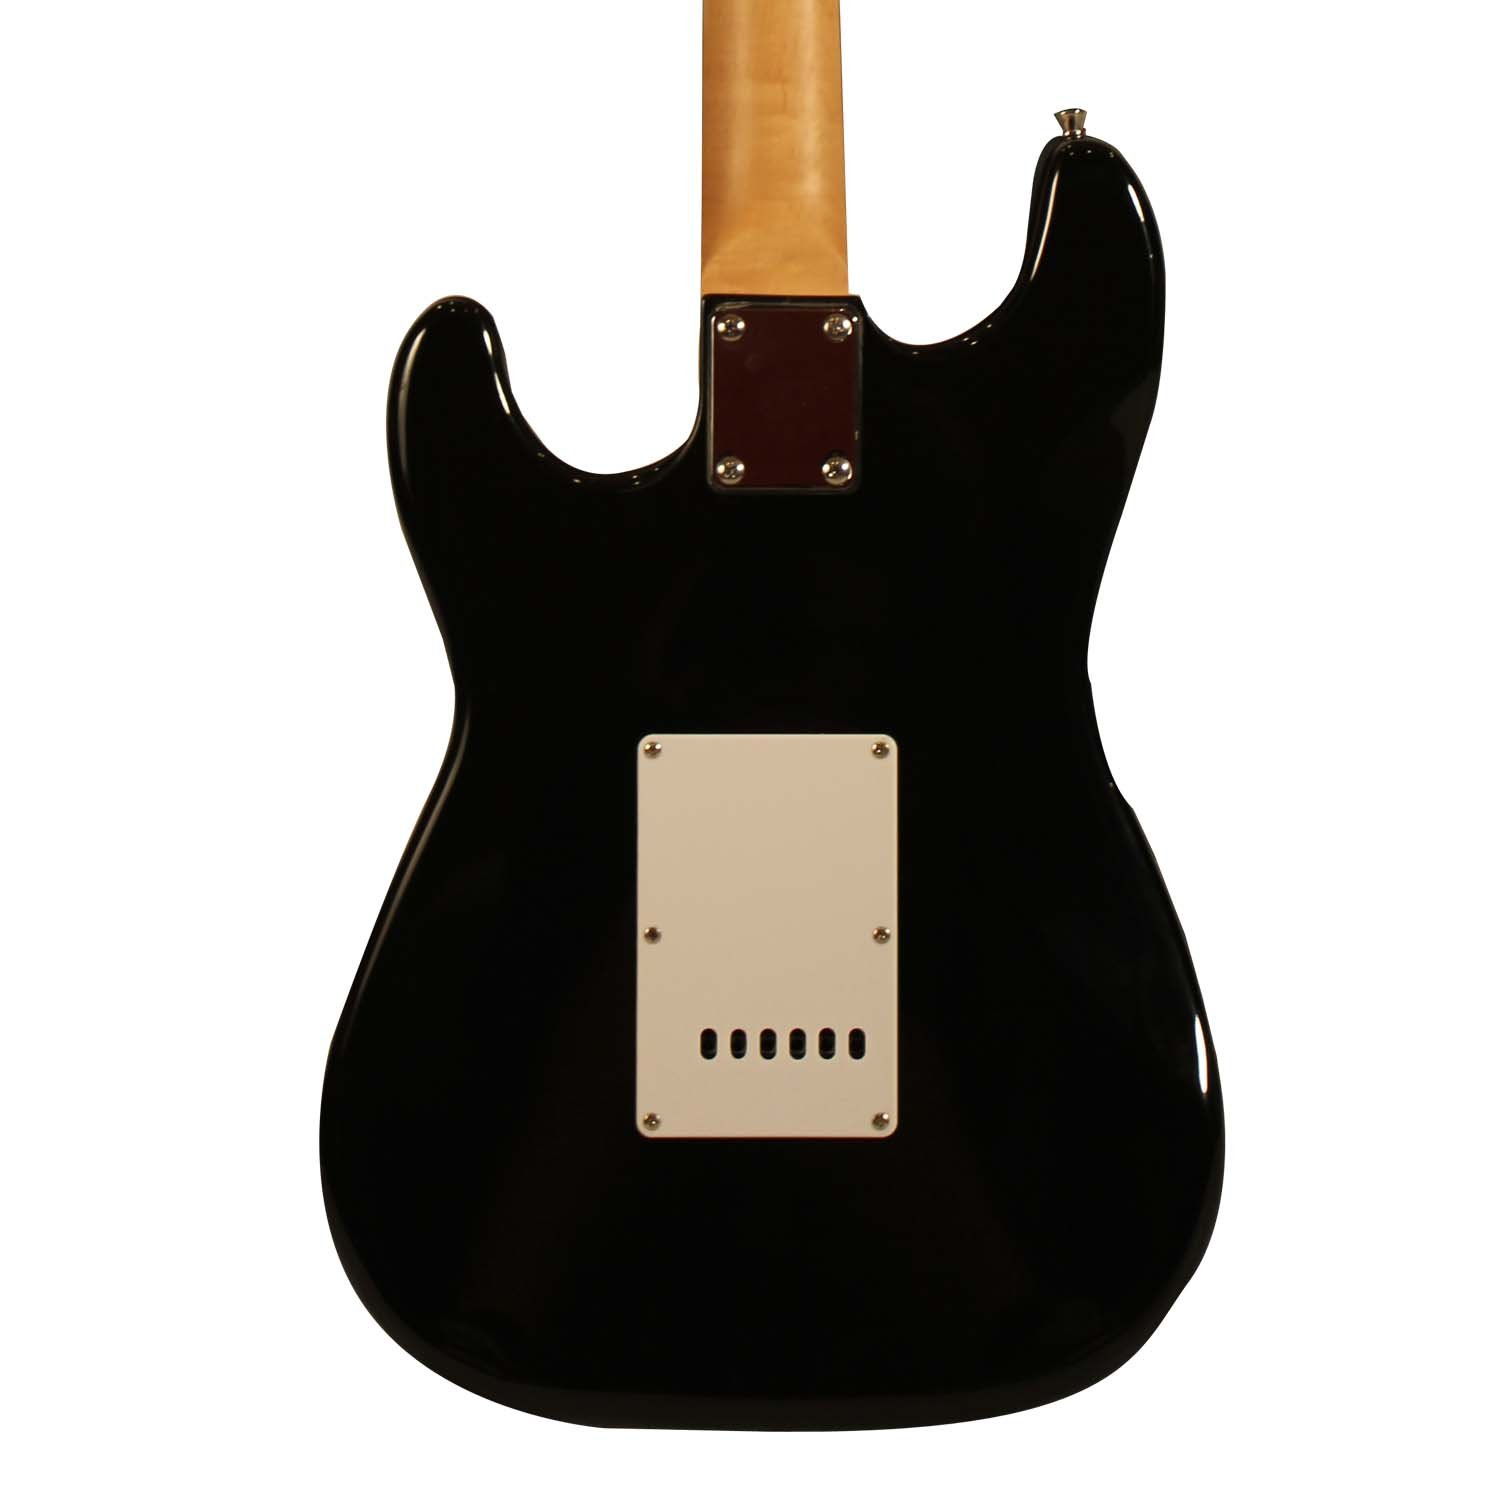 Sawtooth St Es Bkc Black Electric Guitar With Chrome Guitars Telecaster Pick Guard Ok I Can Get A Diagram Out To Pickguard Musical Instruments